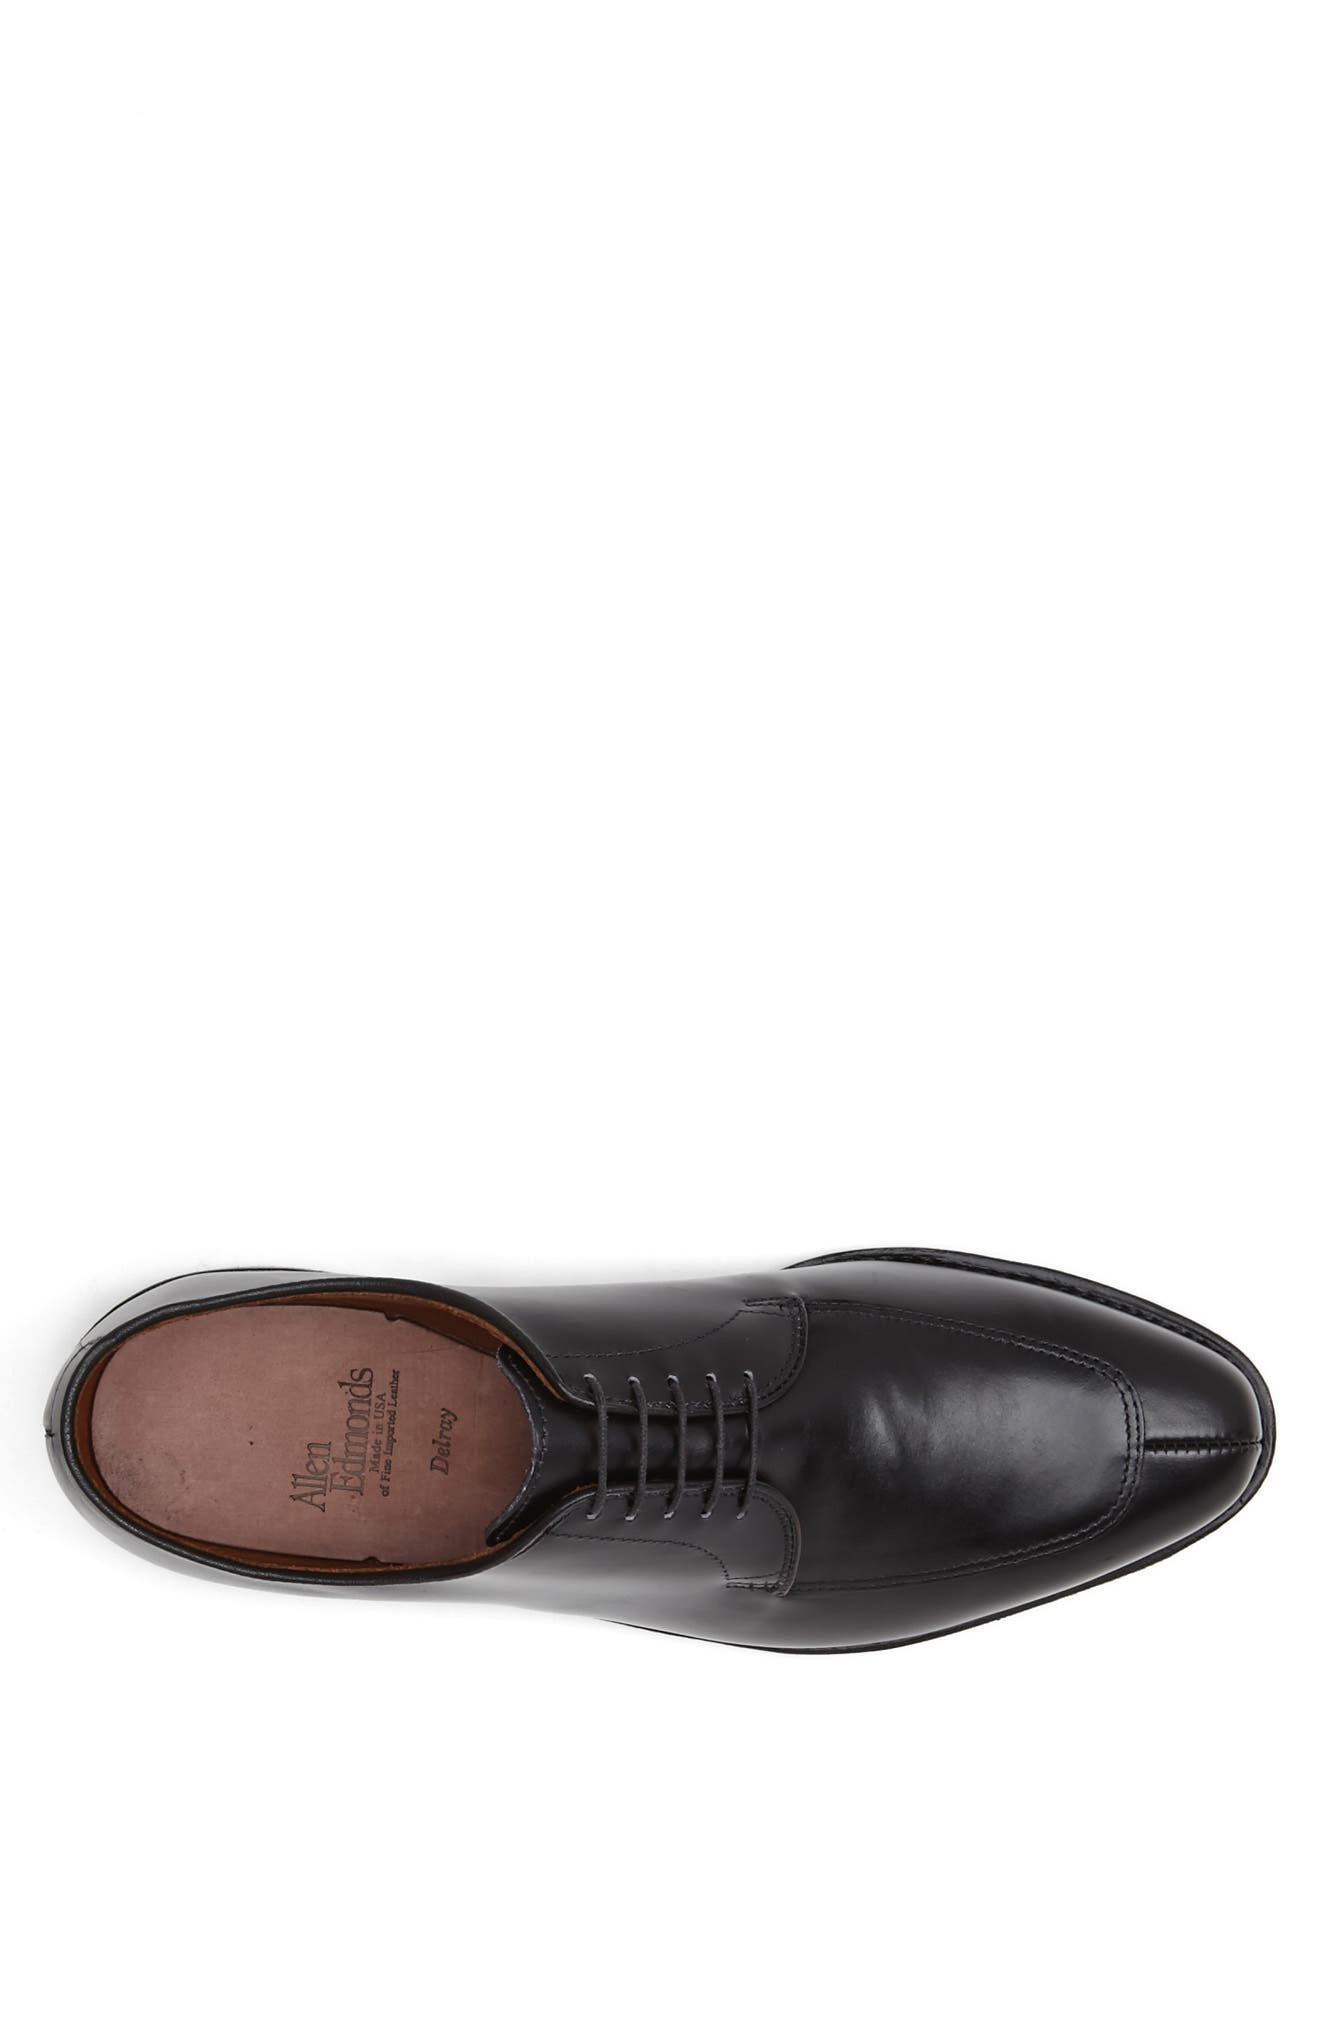 ALLEN EDMONDS, Delray Split Toe Derby, Alternate thumbnail 3, color, BLACK